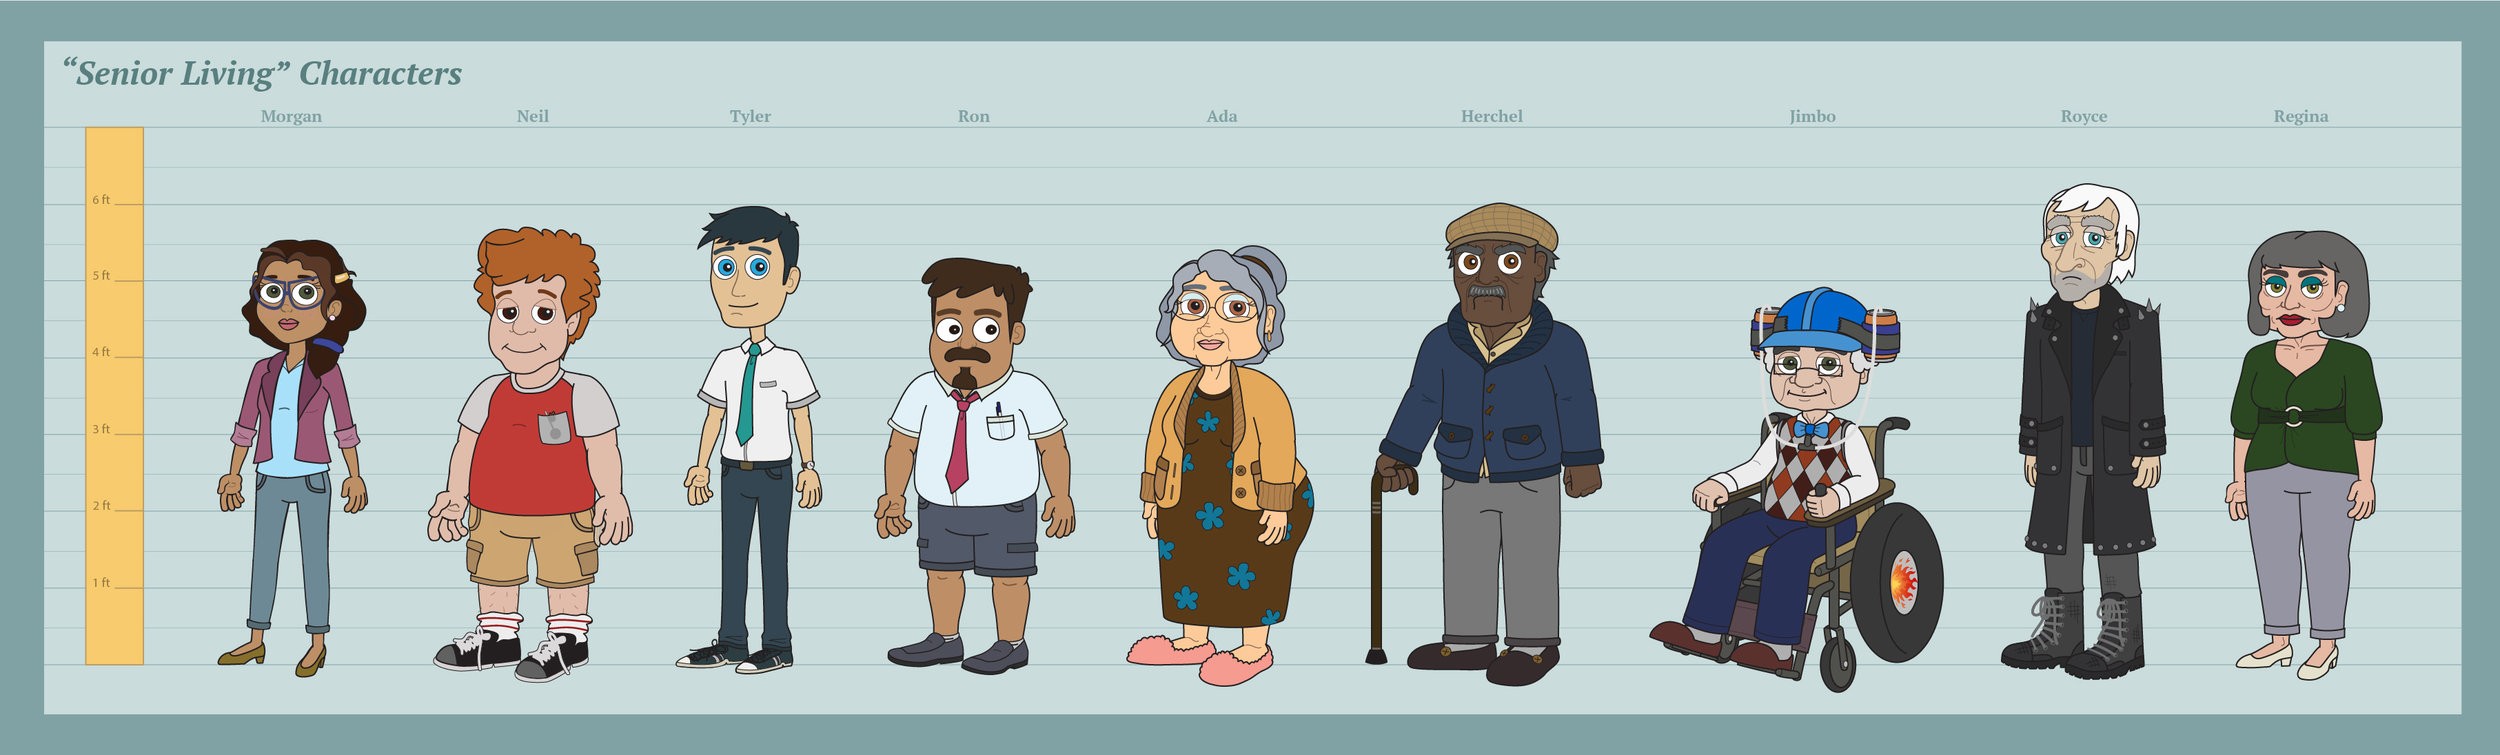 The final character designs completed by Jen Yung.